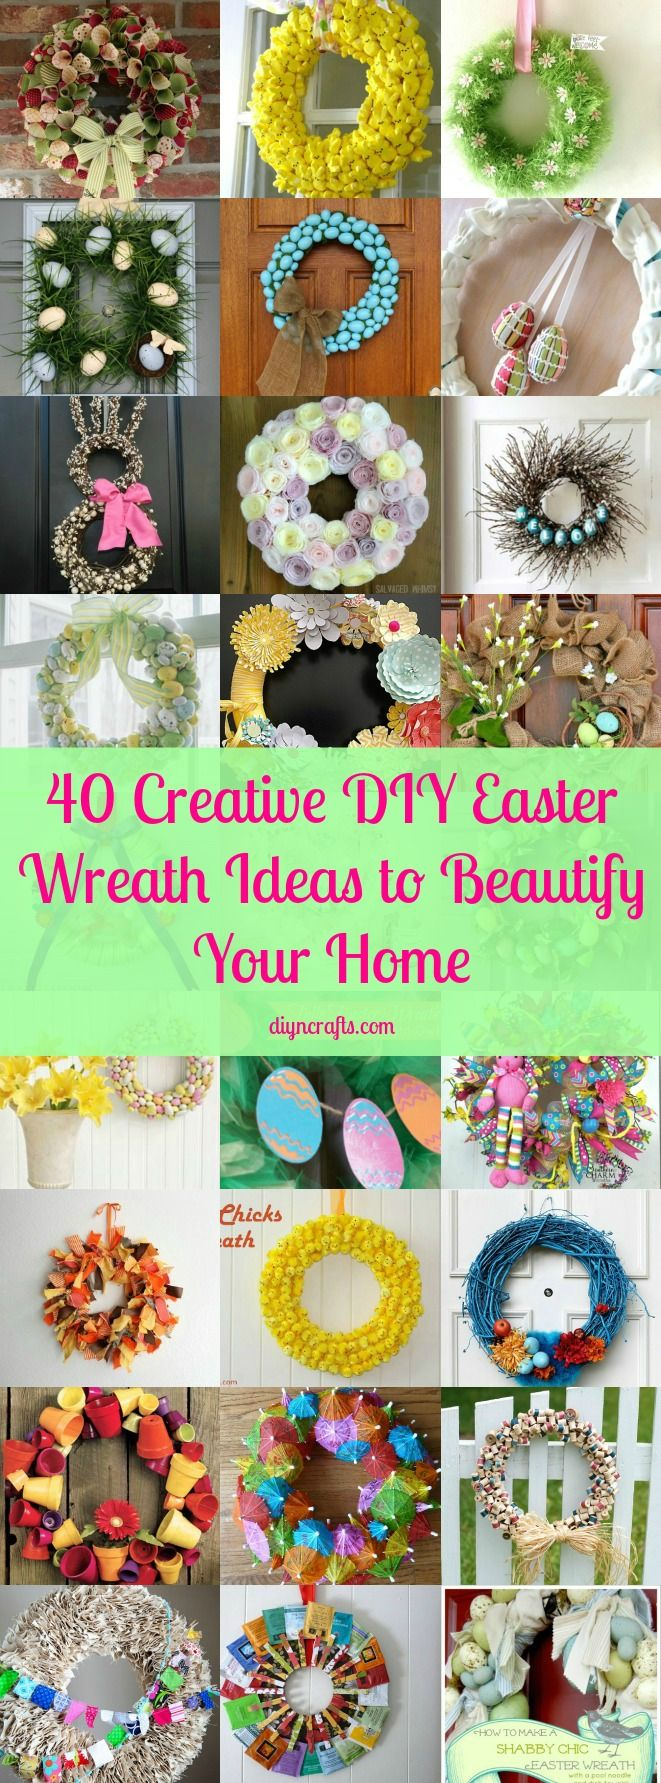 40 Creative DIY Easter Wreath Ideas to Beautify Your Home Decorating for Easter is not nearly as difficult as many believe. In fact, there are a number of ways that you can decorate using things that you may already have on hand. If you are someone who normally hangs a wreath on the front door, we have a great collection of DIY wreaths that are creative, fun and best of all, easy to make.